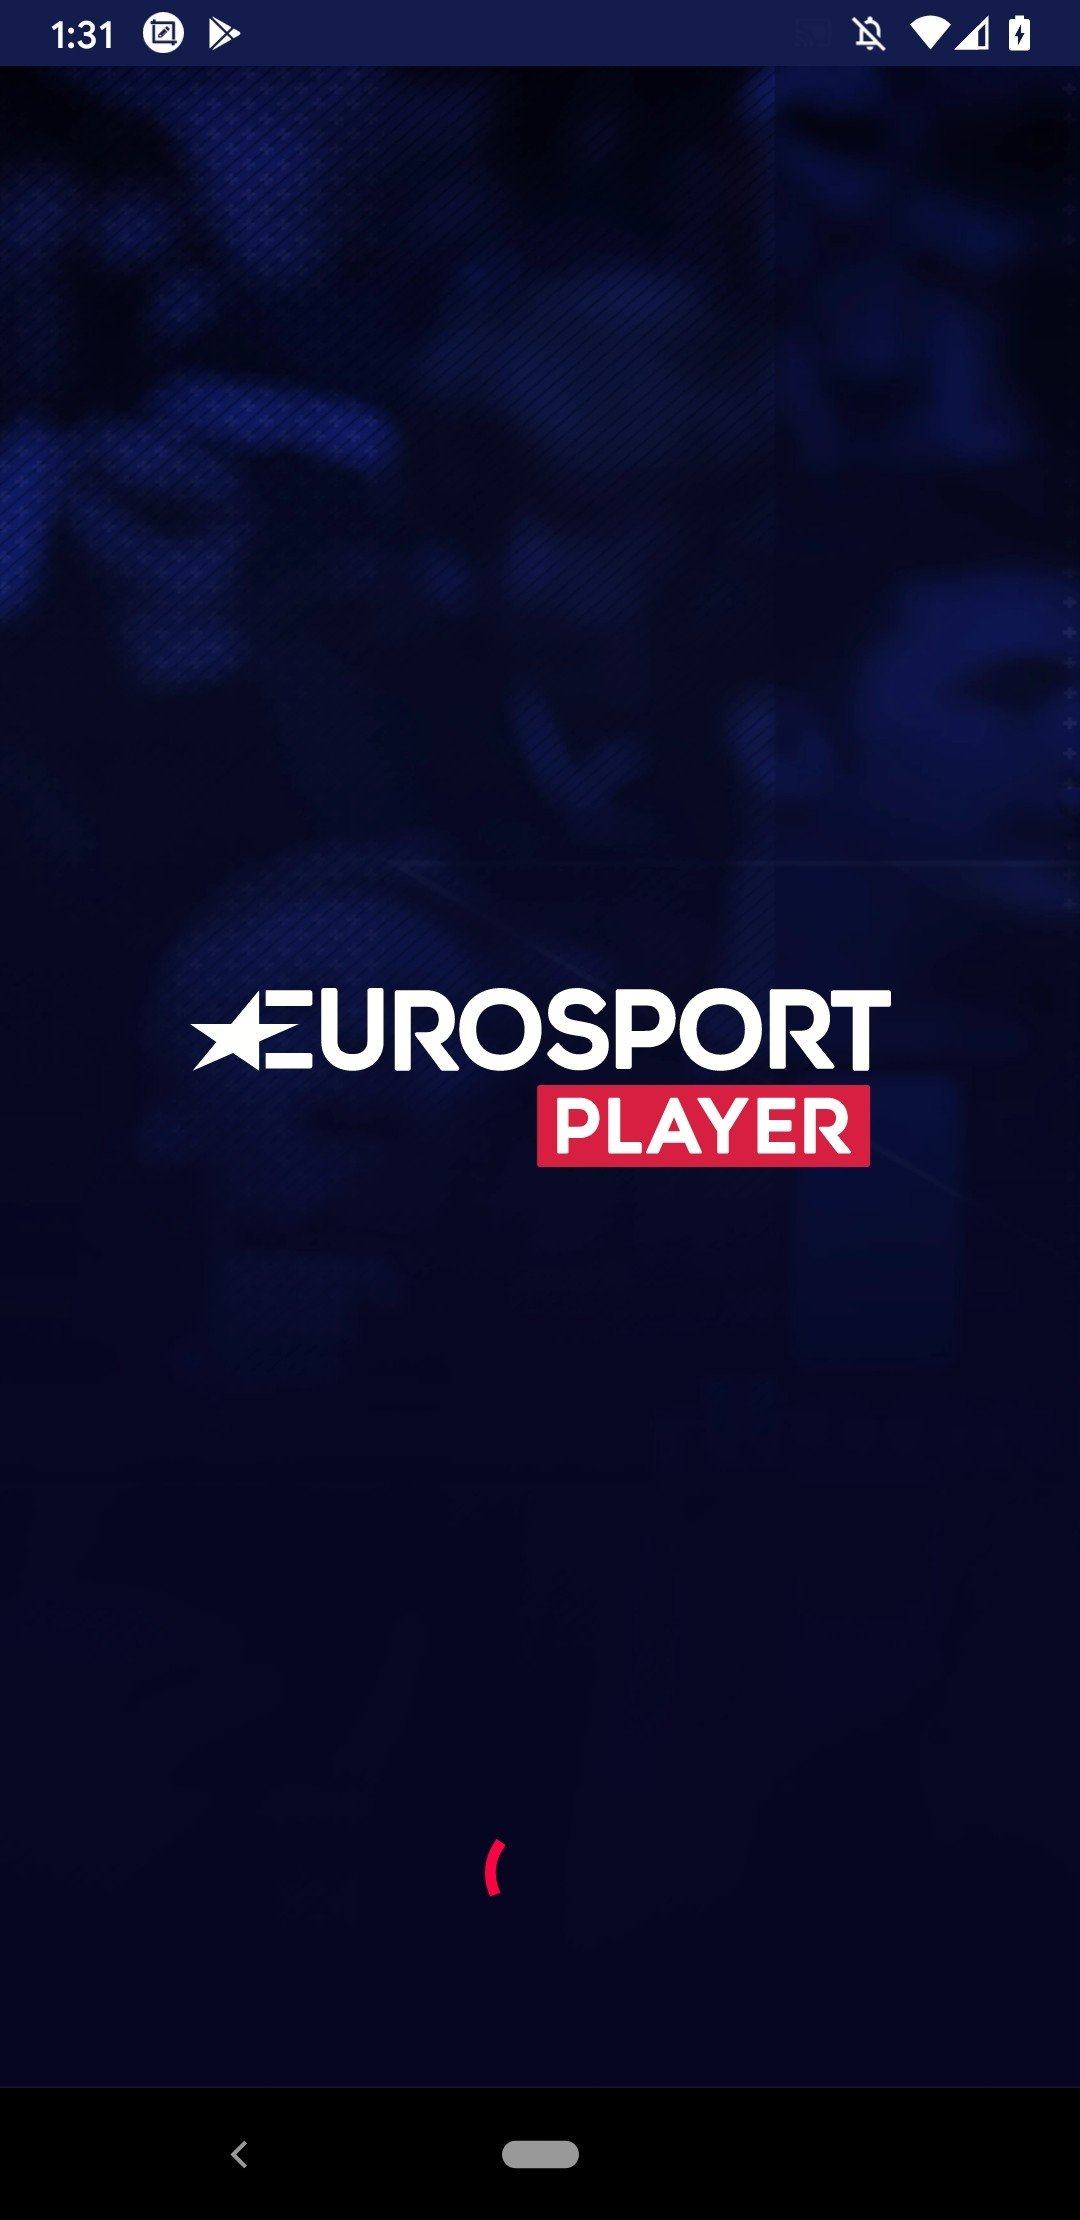 Eurosport Player 6 5 0 - Download for Android APK Free